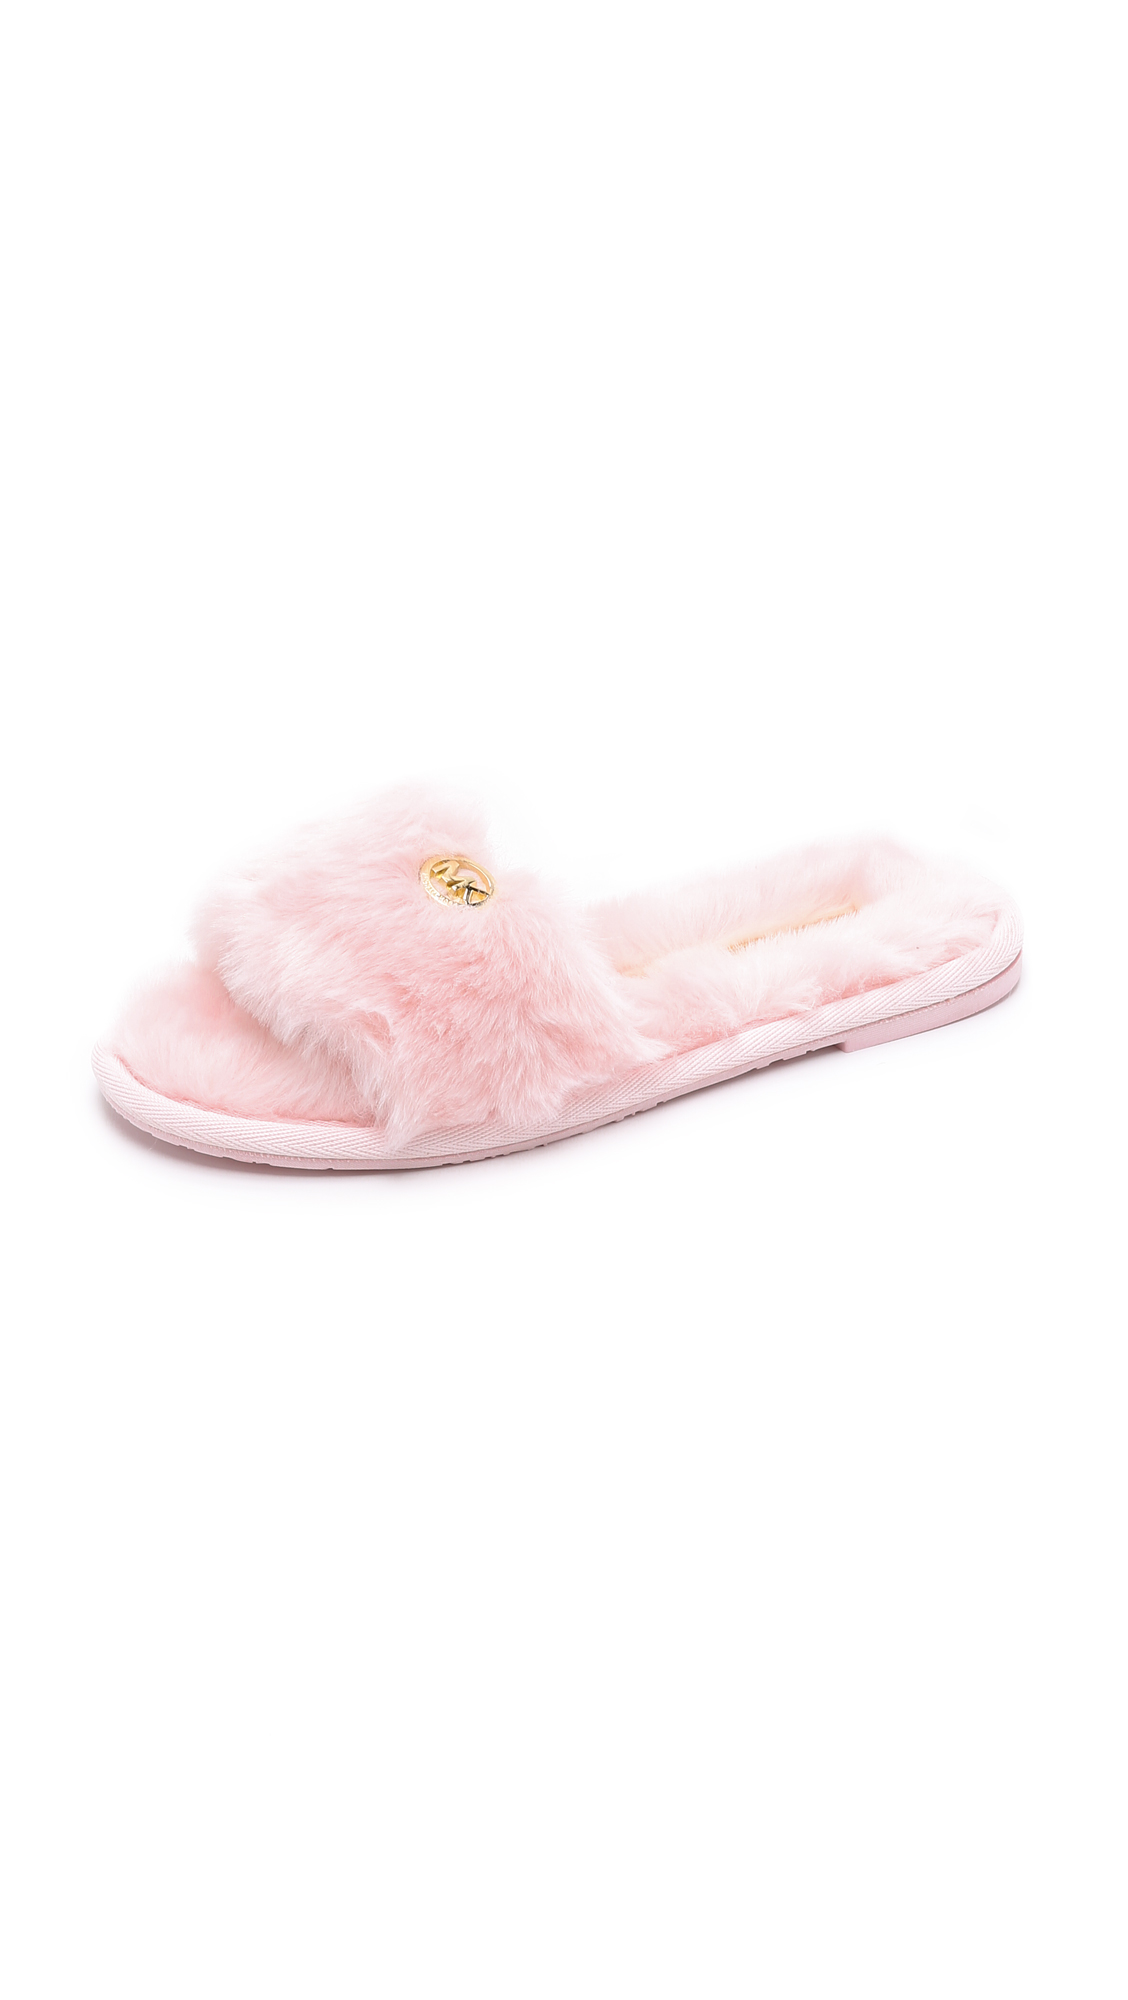 7418d4e015c3f MICHAEL Michael Kors Jet Set Faux Fur Slide Slippers